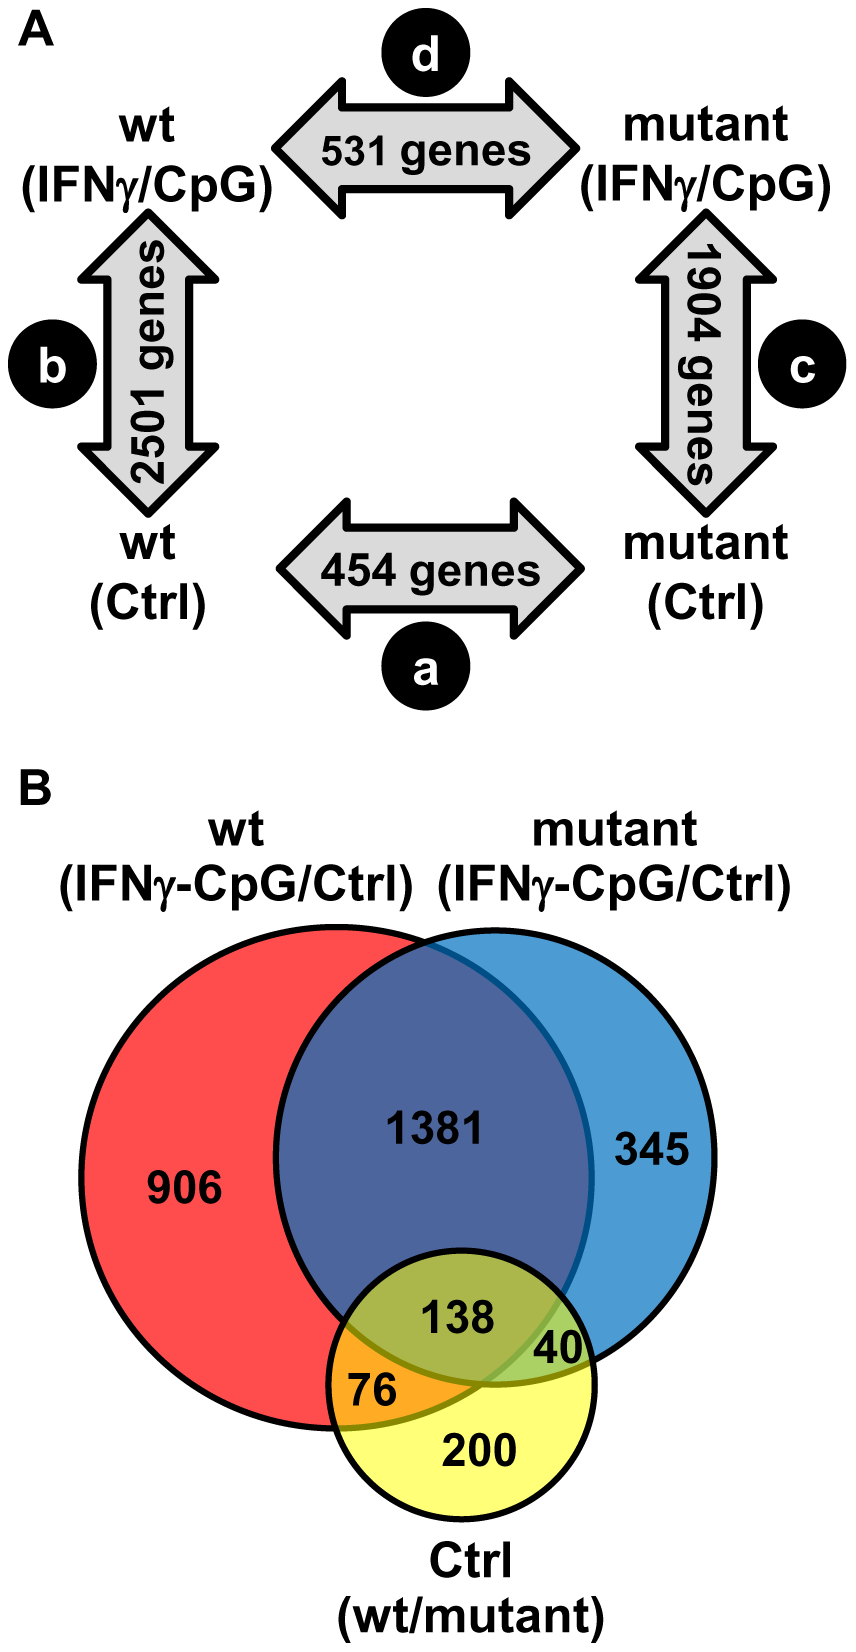 Pairwise analysis of transcriptional responses of wt and IRF8 mutant BMDMs at basal level and following exposure to IFNγ/CpG.